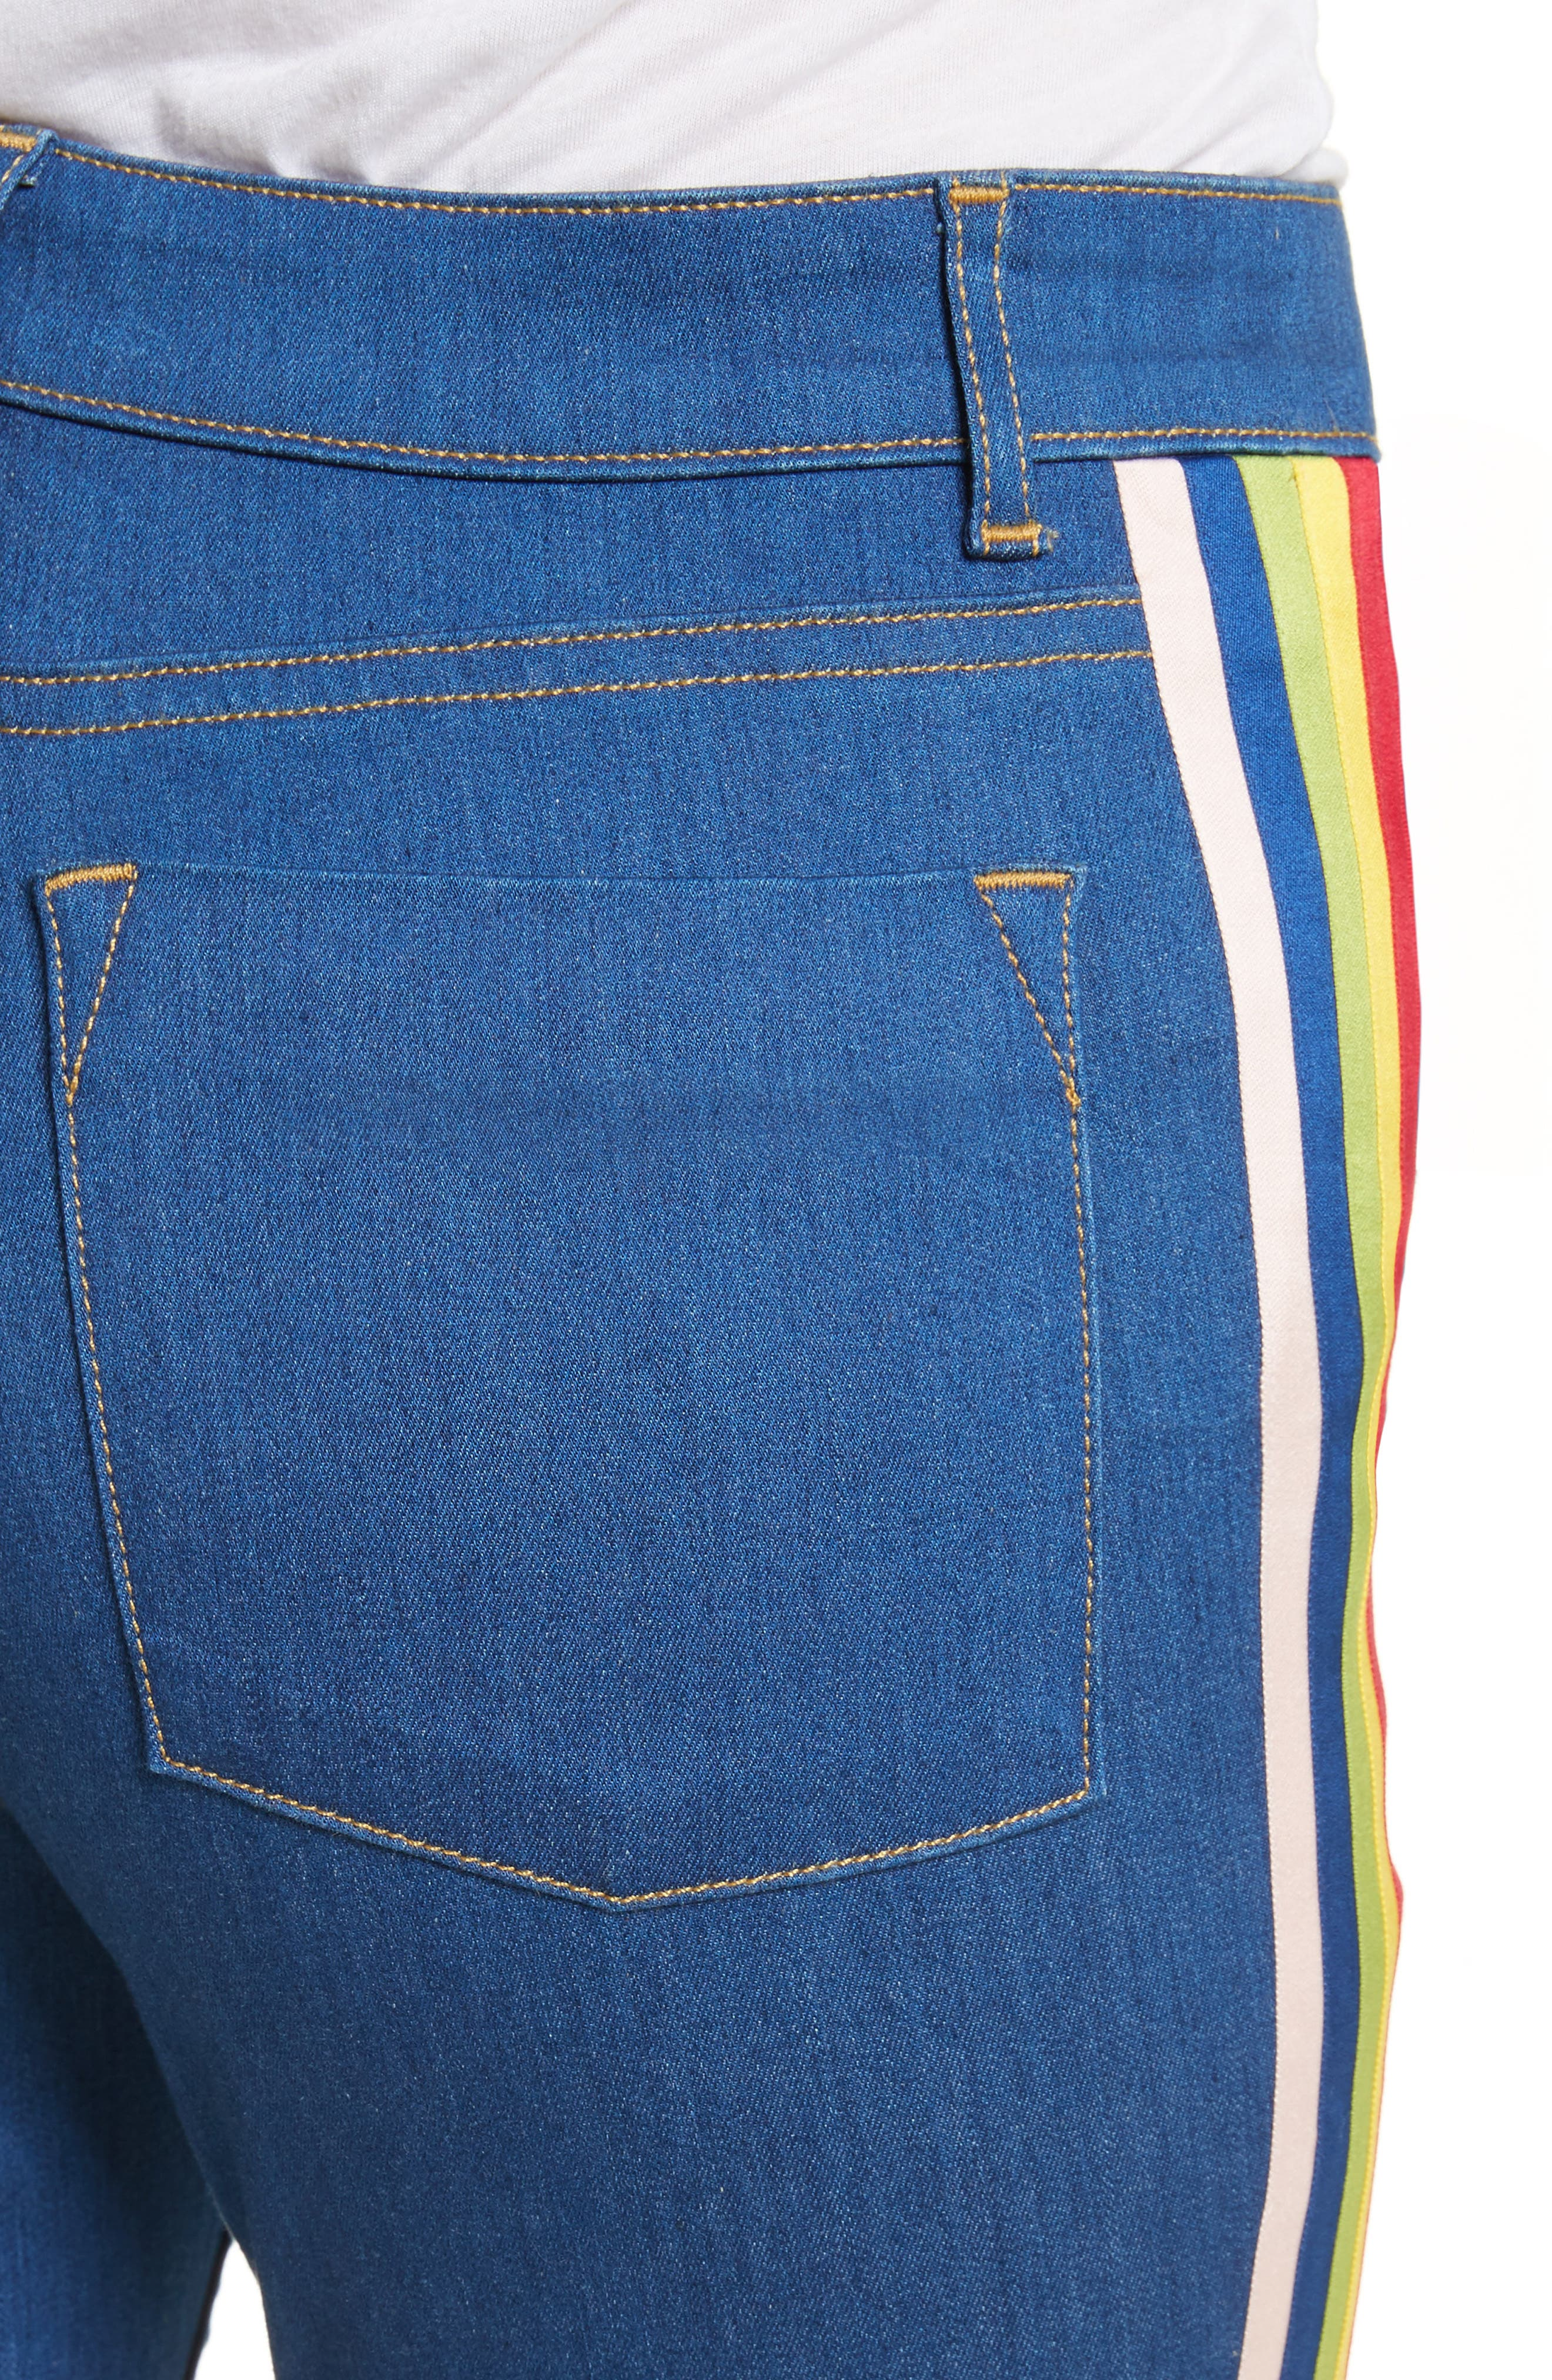 Kayleigh Bell Jeans,                             Alternate thumbnail 4, color,